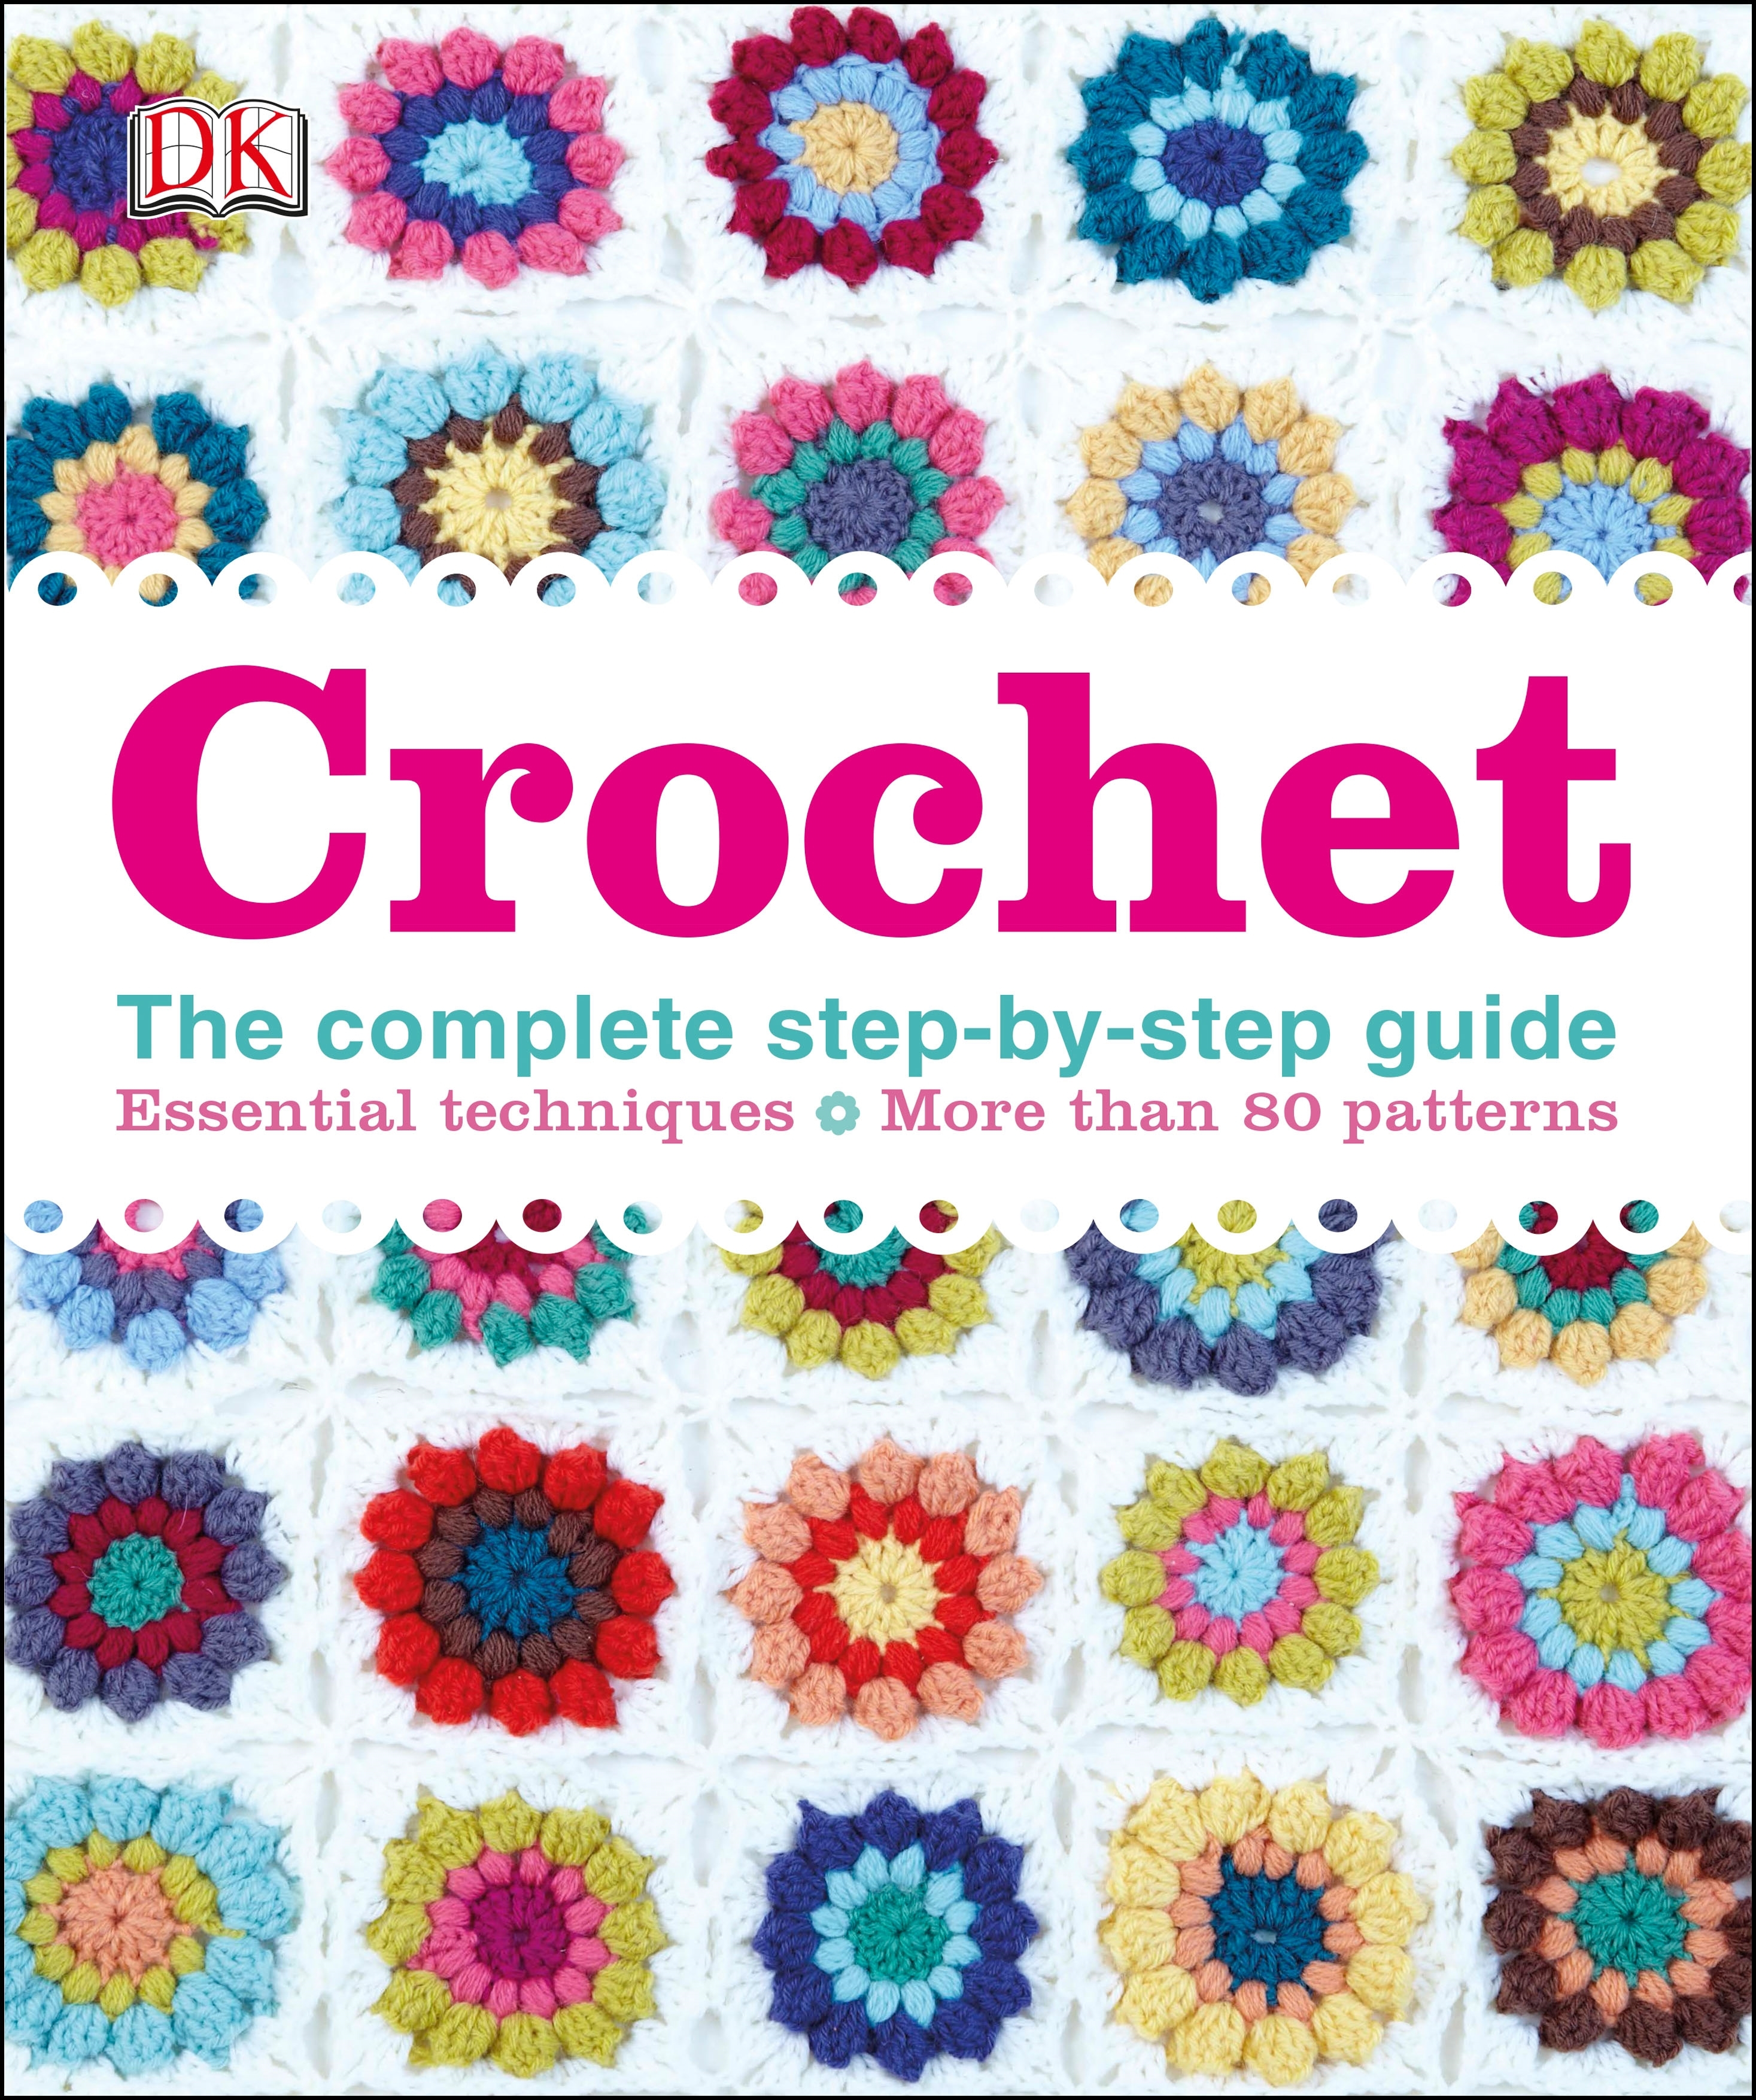 Crochet 101 Master Basic Skills and Techniques Easily through Step by ...